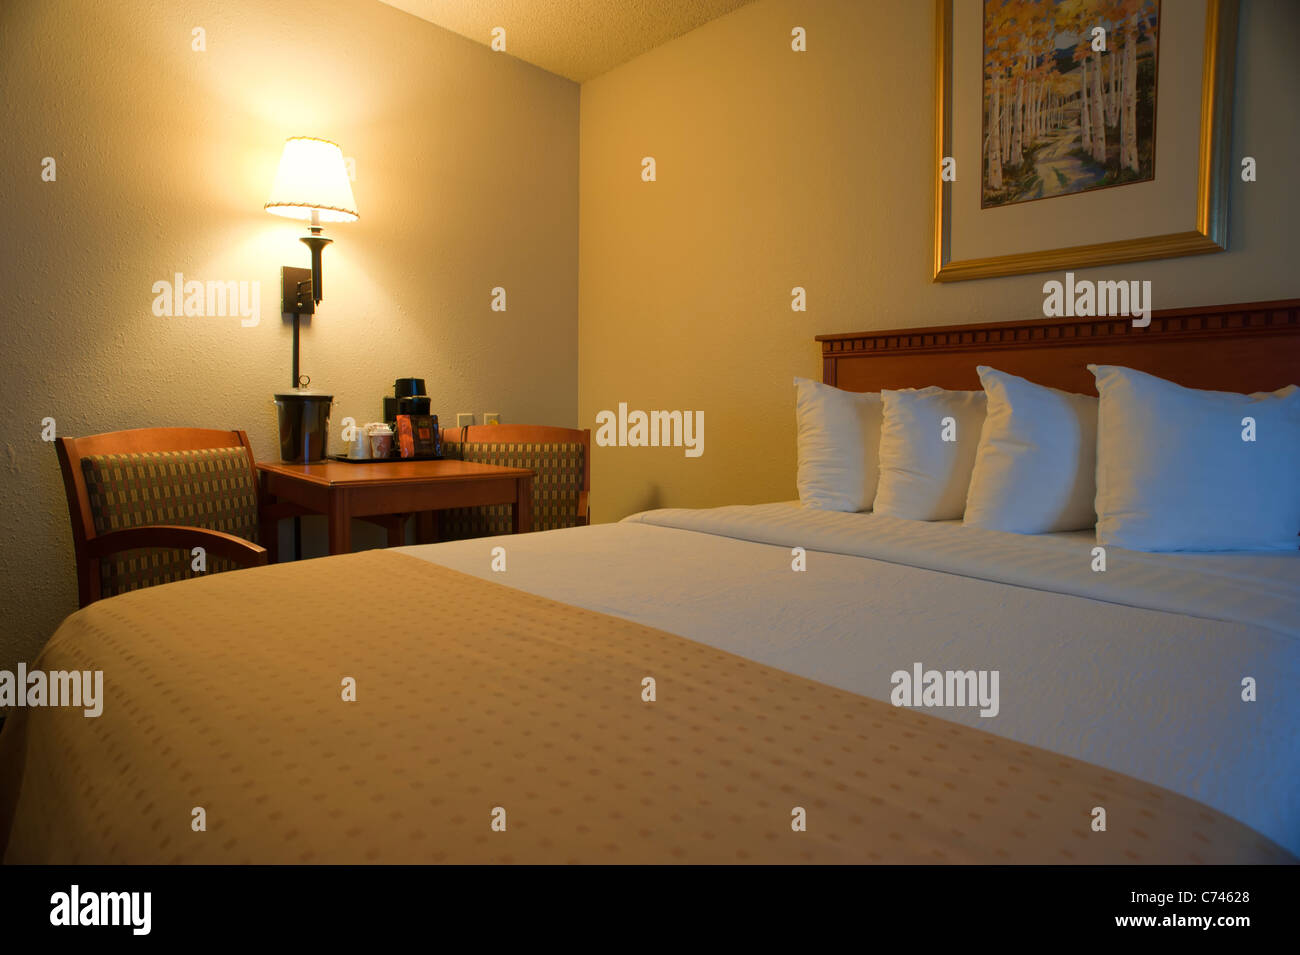 Queen Size Bed Stockfotos & Queen Size Bed Bilder - Alamy